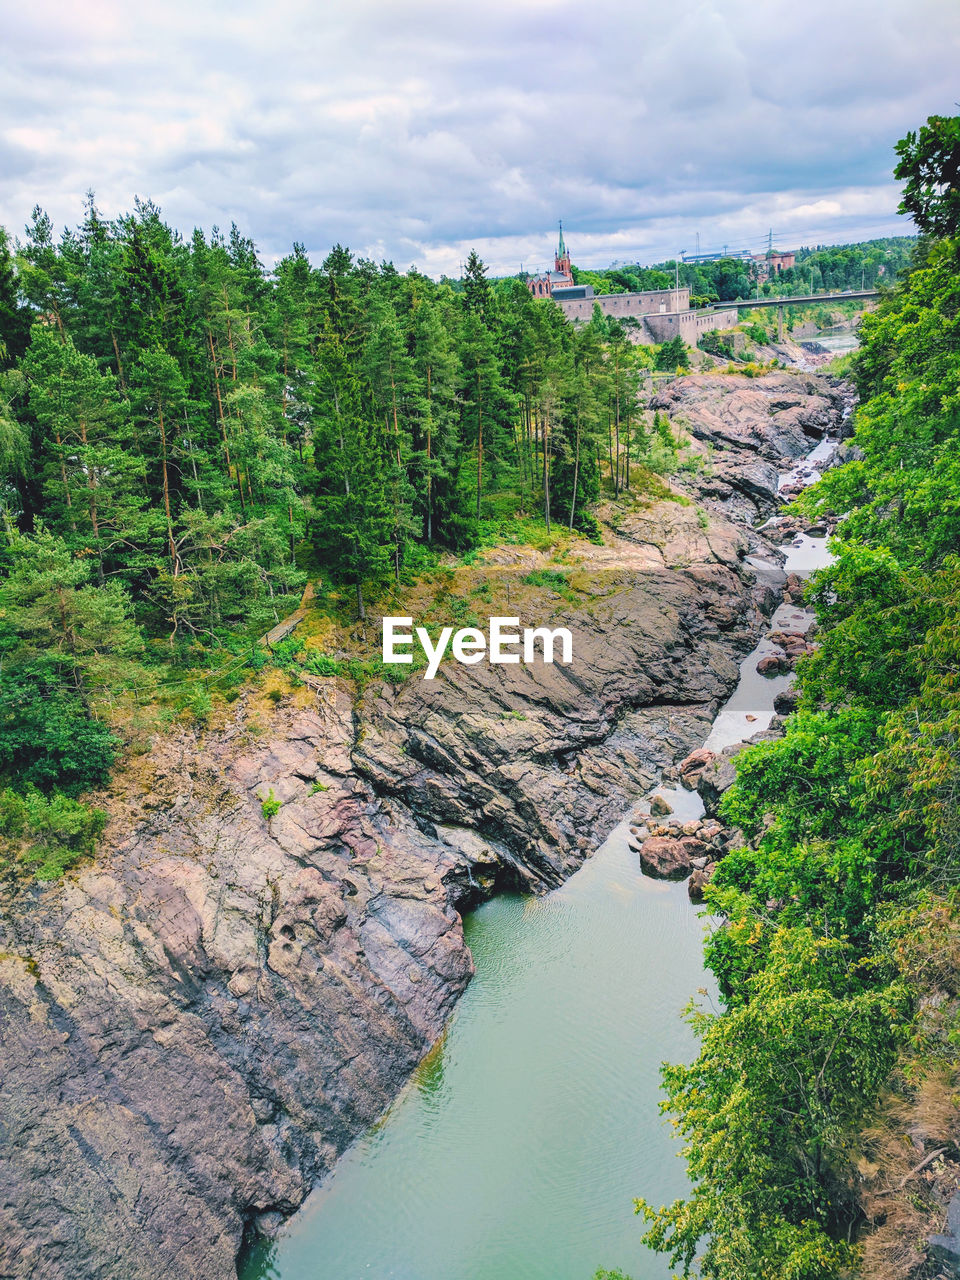 water, tree, plant, beauty in nature, nature, cloud - sky, scenics - nature, high angle view, river, sky, green color, tranquil scene, day, tranquility, no people, growth, land, environment, non-urban scene, outdoors, flowing water